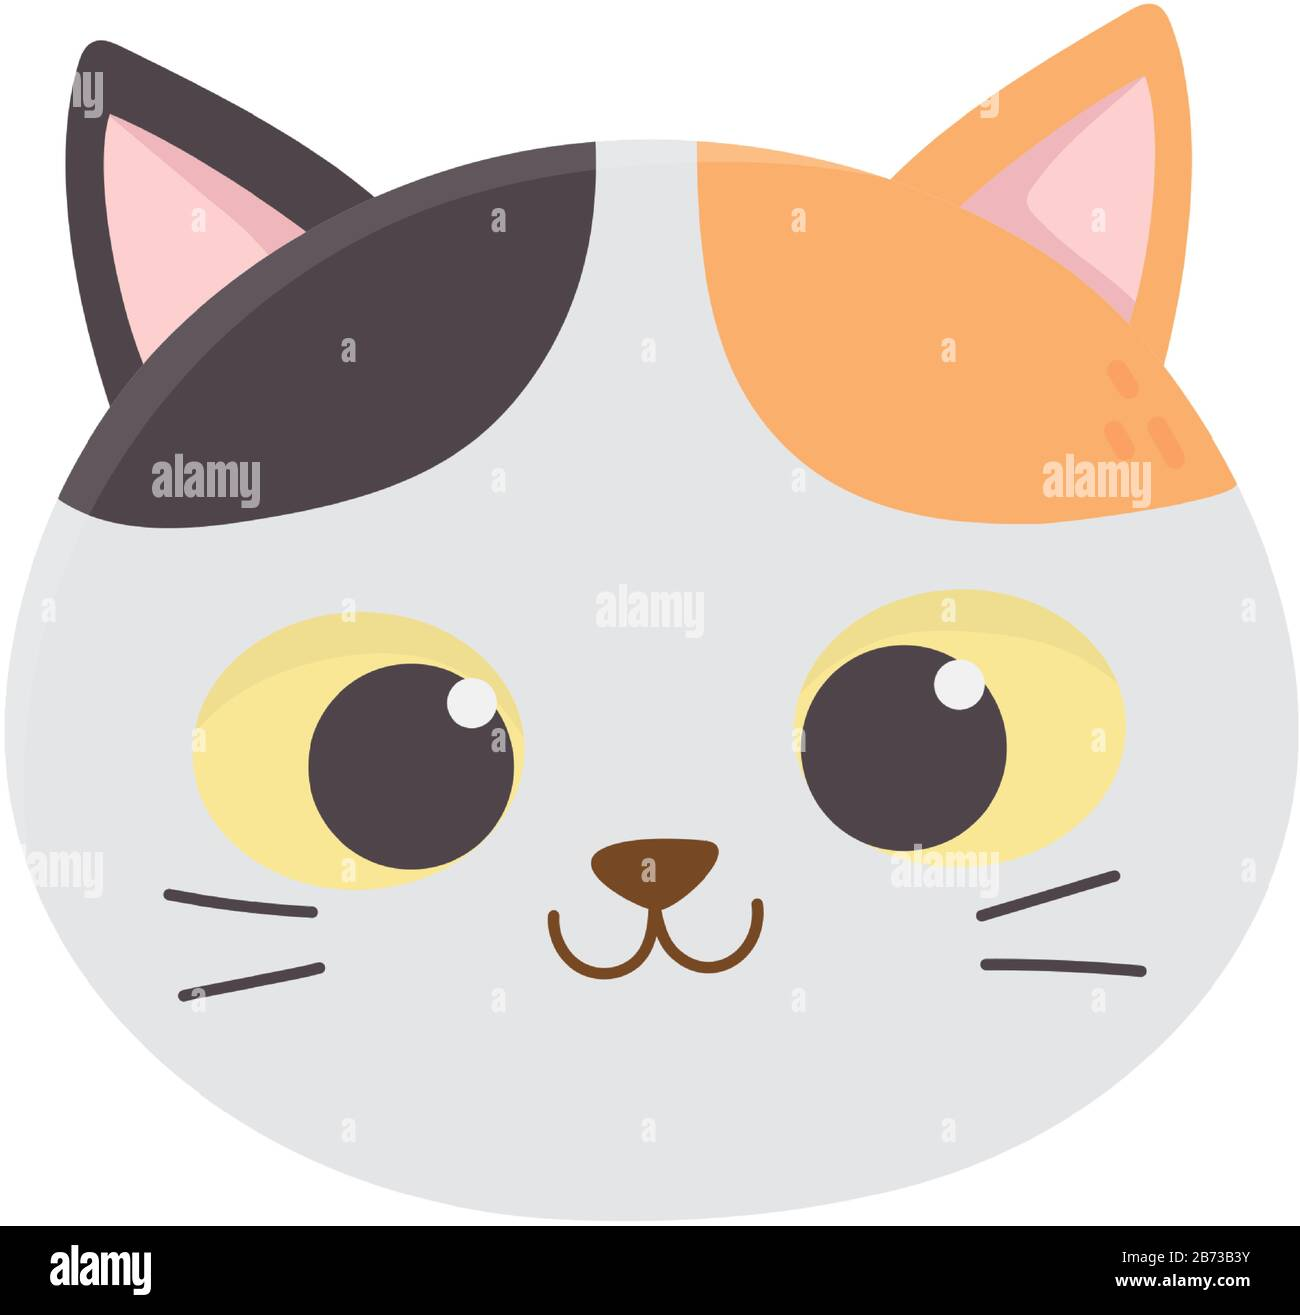 Cute Cat Face Feline Cartoon Animal Icon Vector Illustration Stock